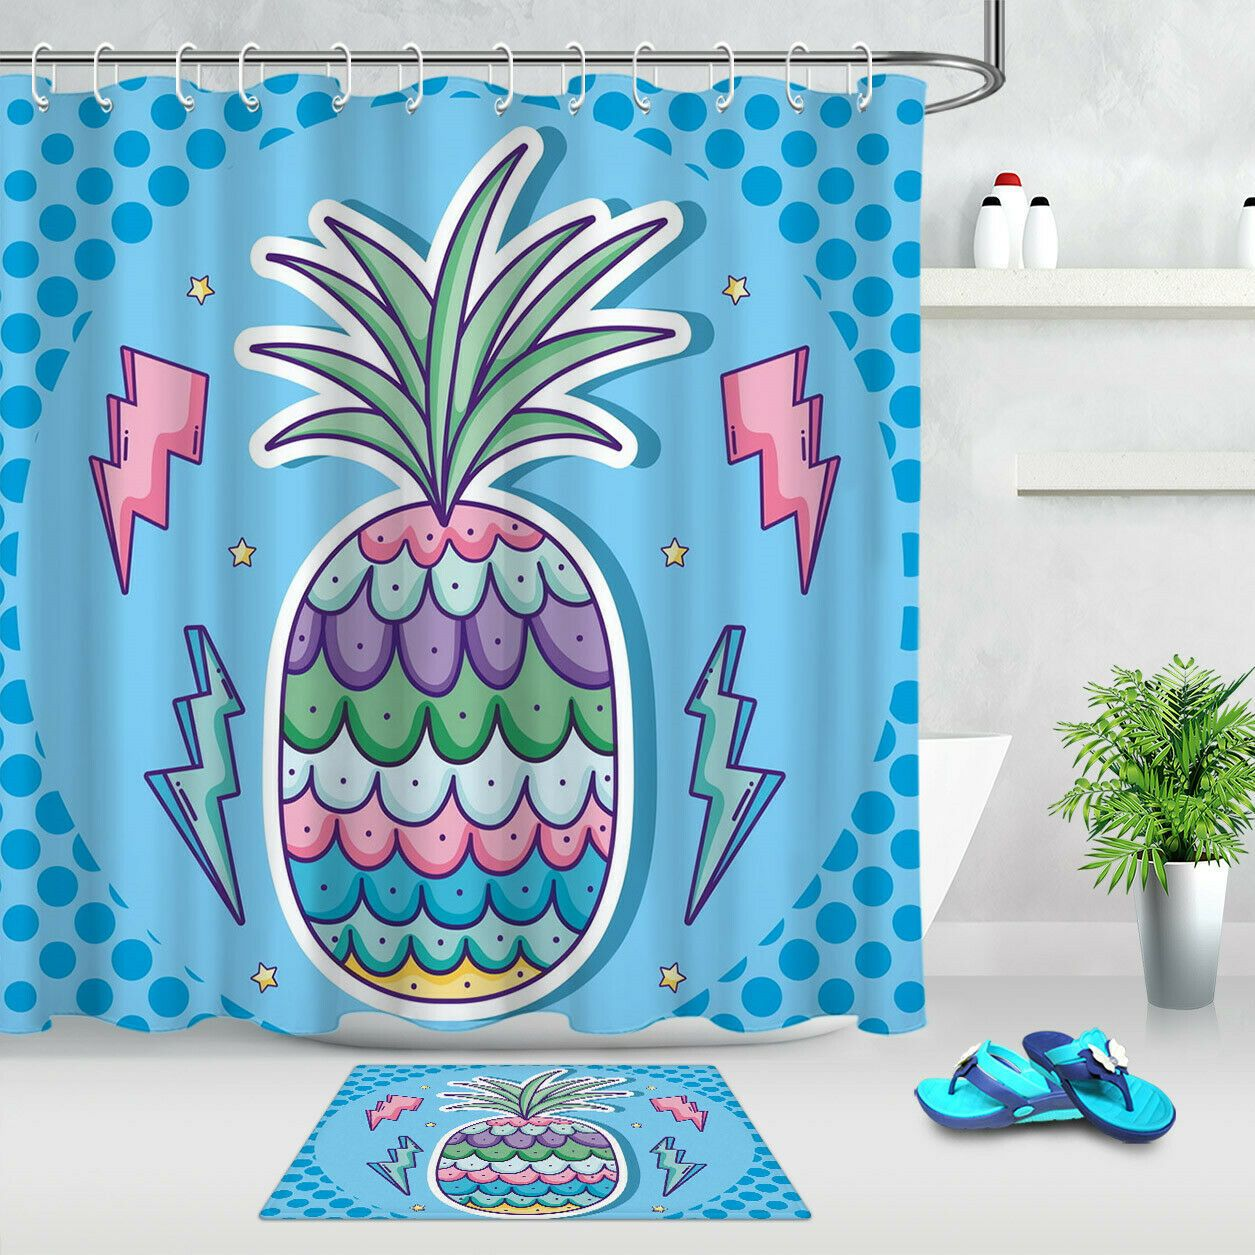 Colored Pineapple Shower Curtain Bathroom Home Decor Waterproof